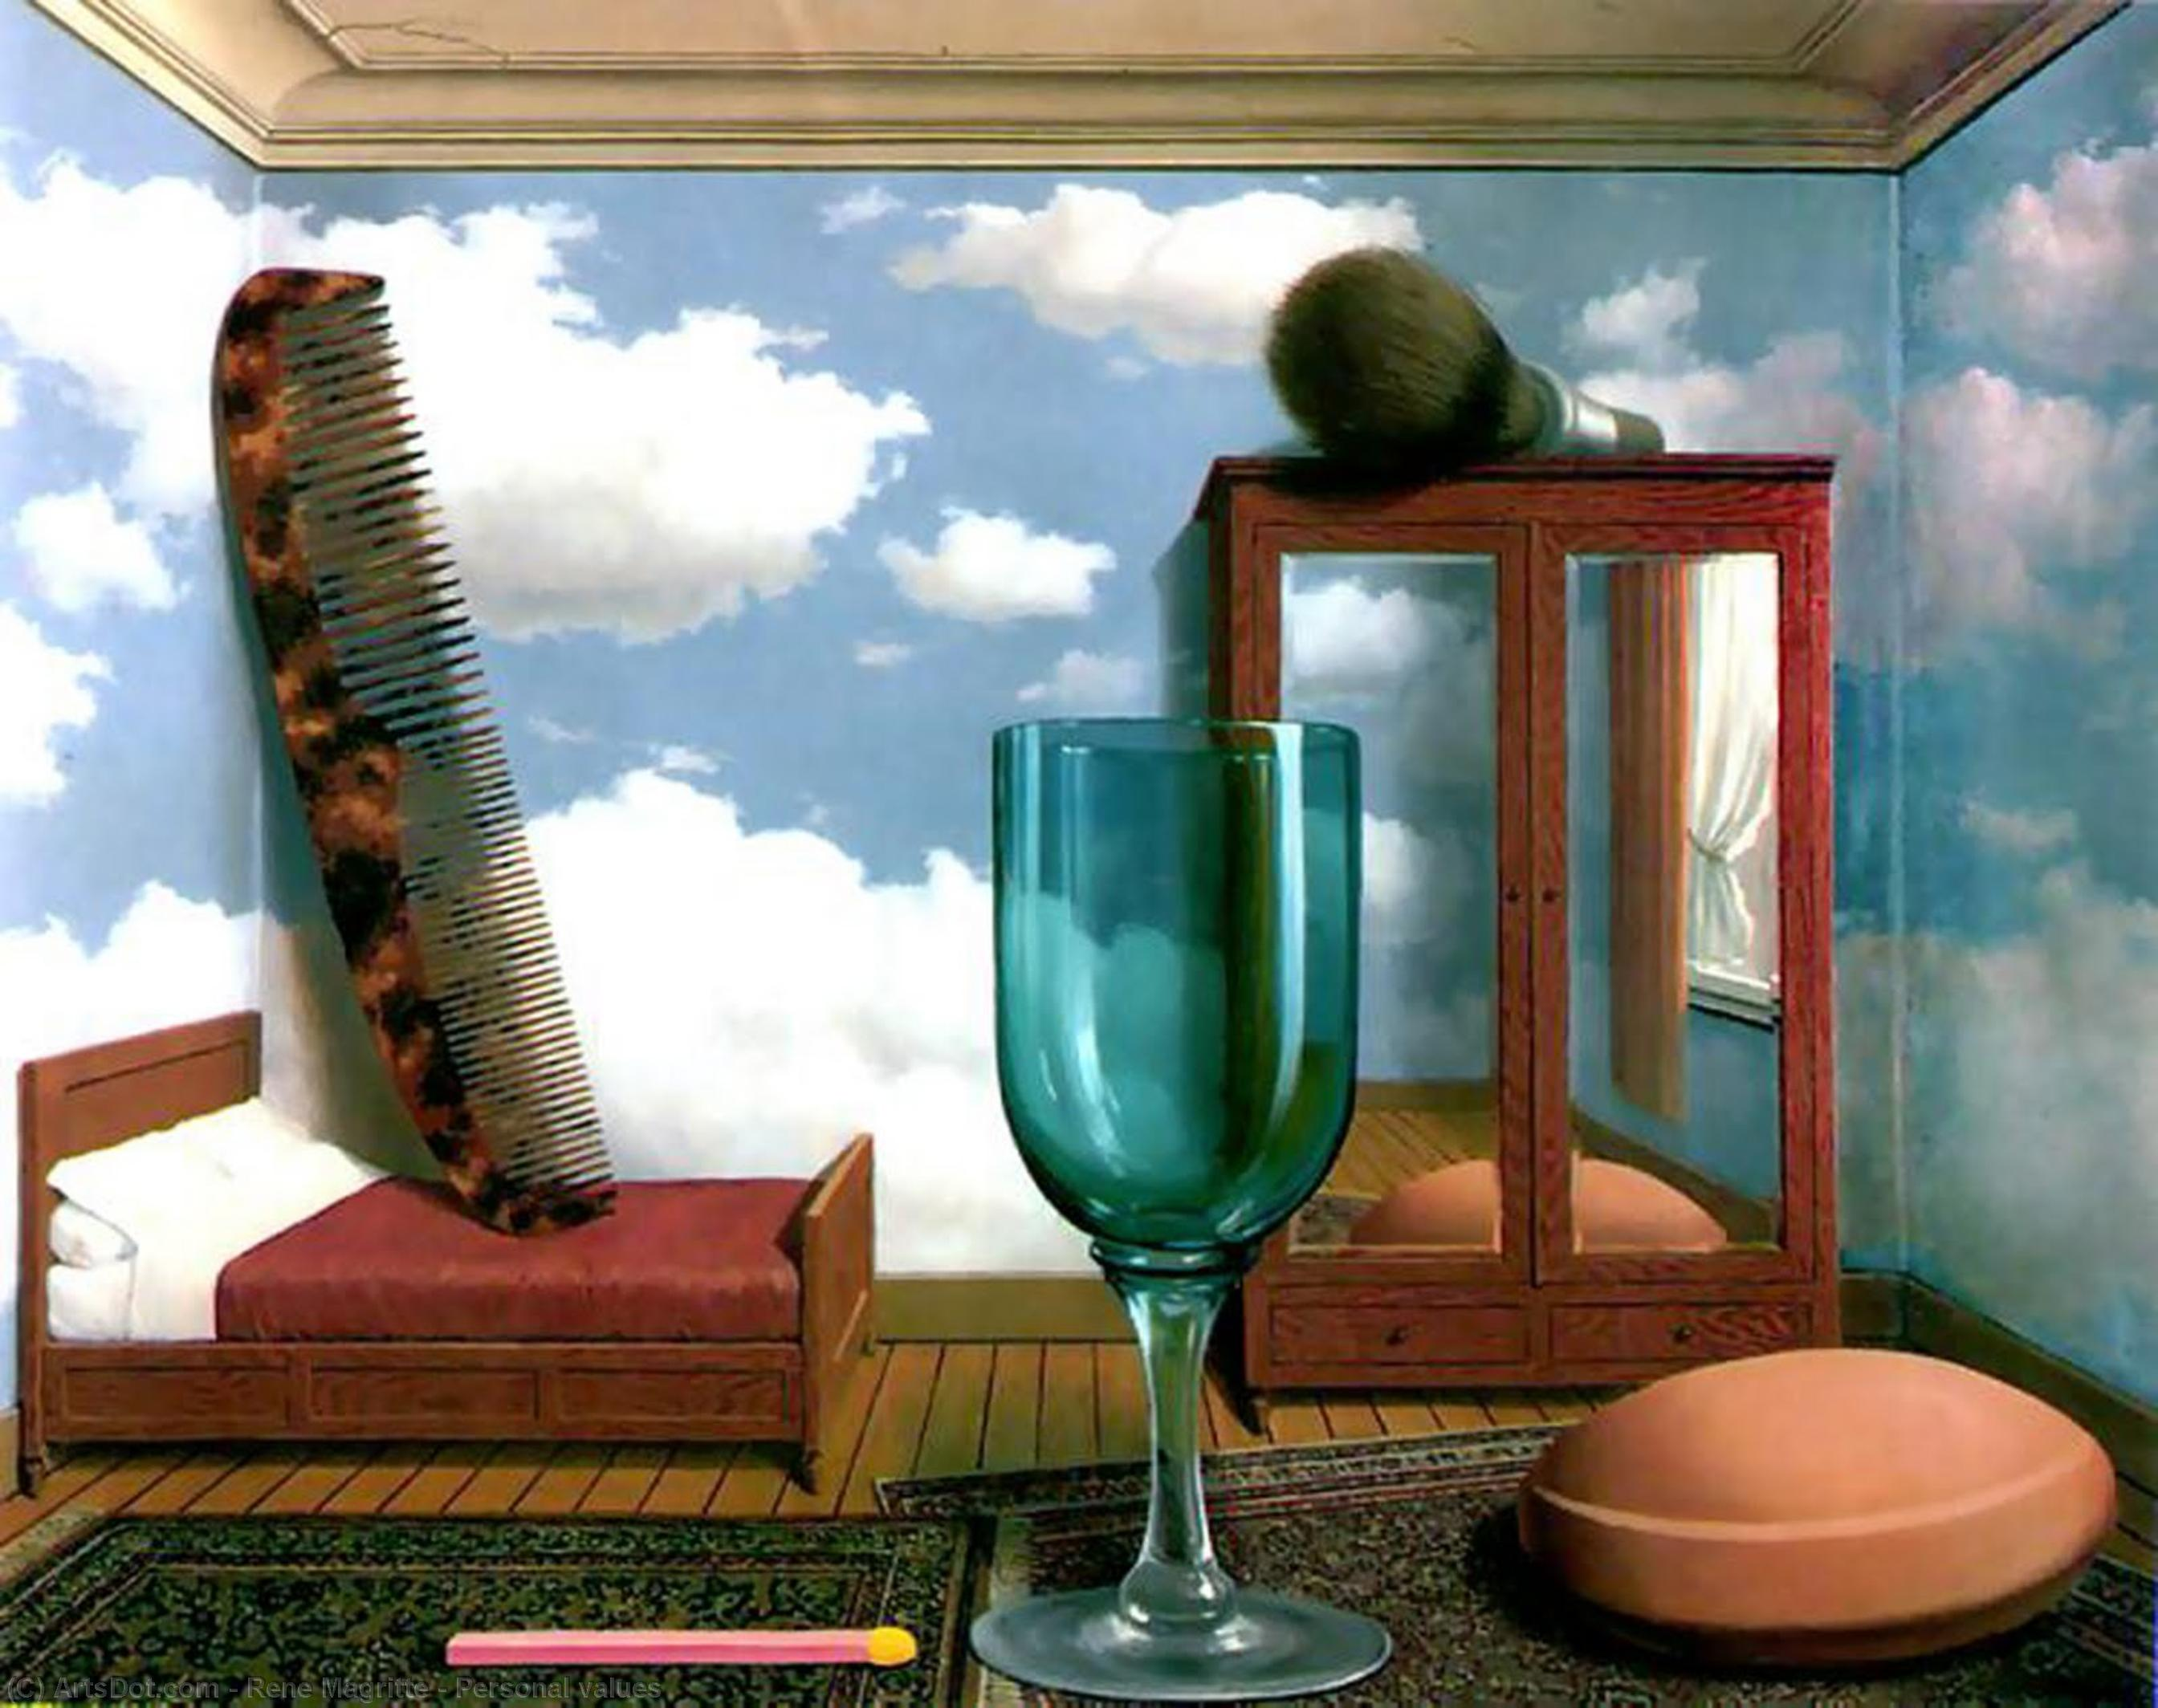 Wikioo.org - The Encyclopedia of Fine Arts - Painting, Artwork by Rene Magritte - Personal values